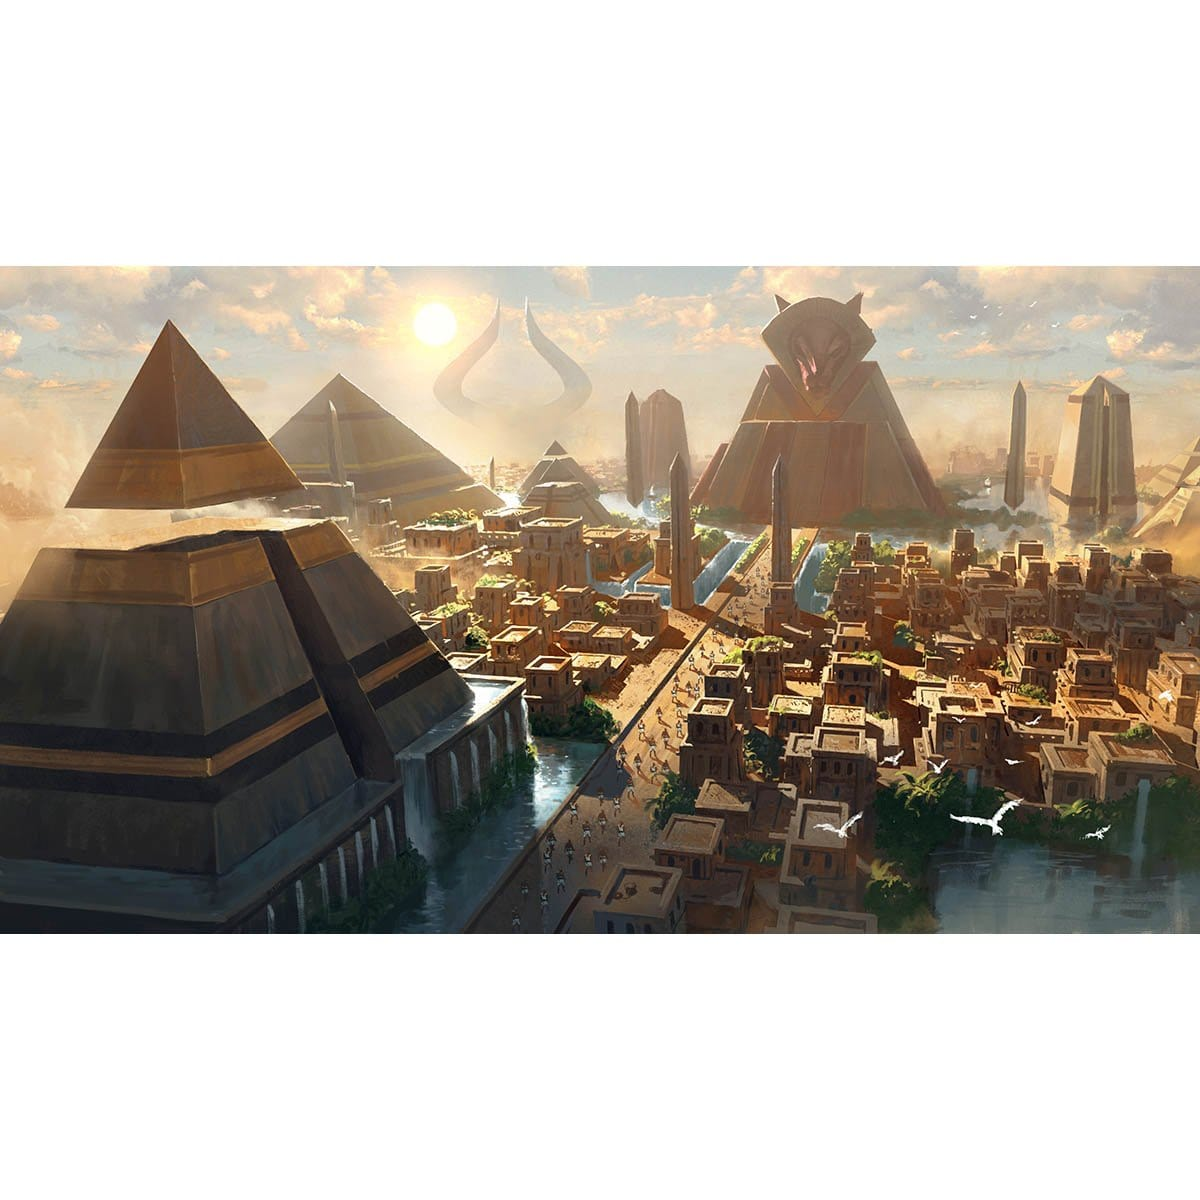 Amonkhet Promotional Art Print